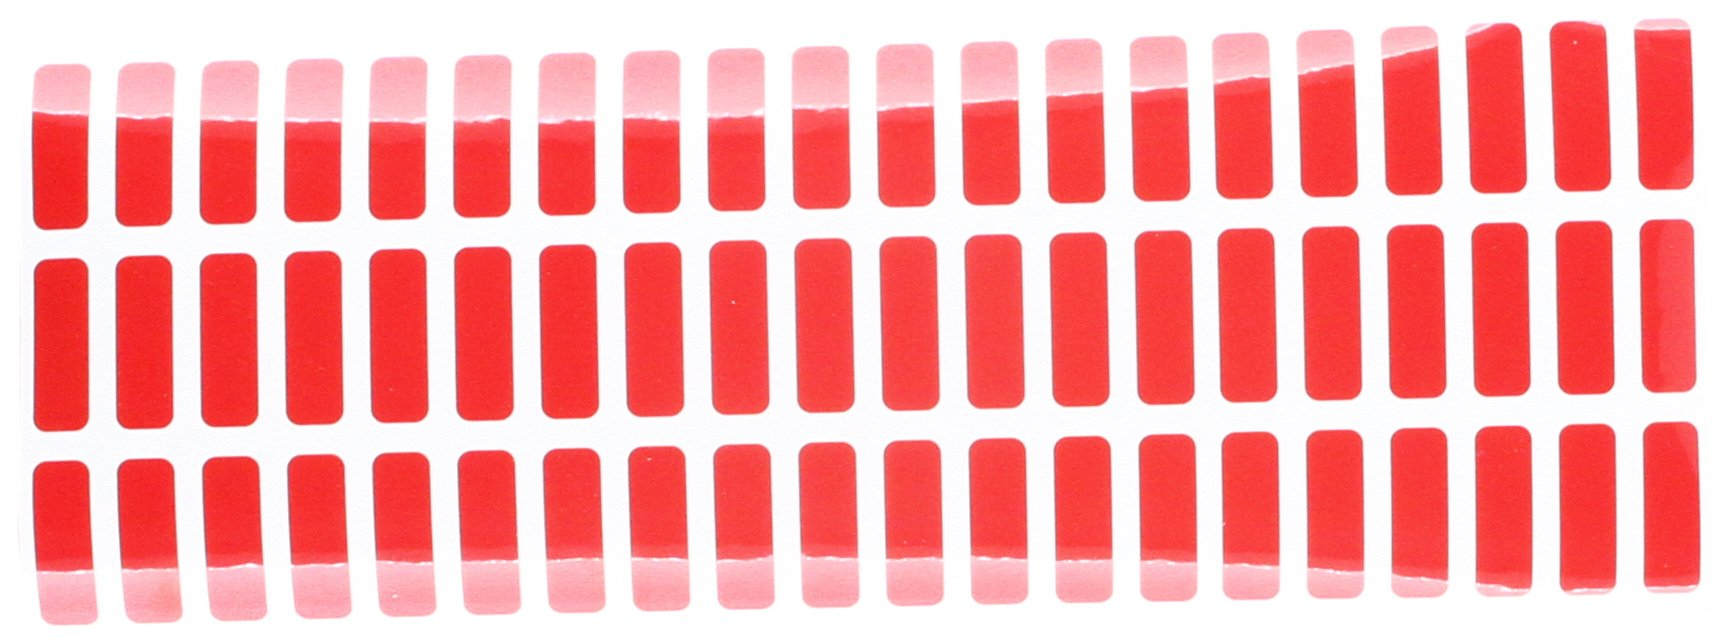 """500 Red TamperColor Tamper Evident Red Security Label Seal Sticker, Rectangle 0.75"""" x 0.25"""" (19mm x 6mm)."""